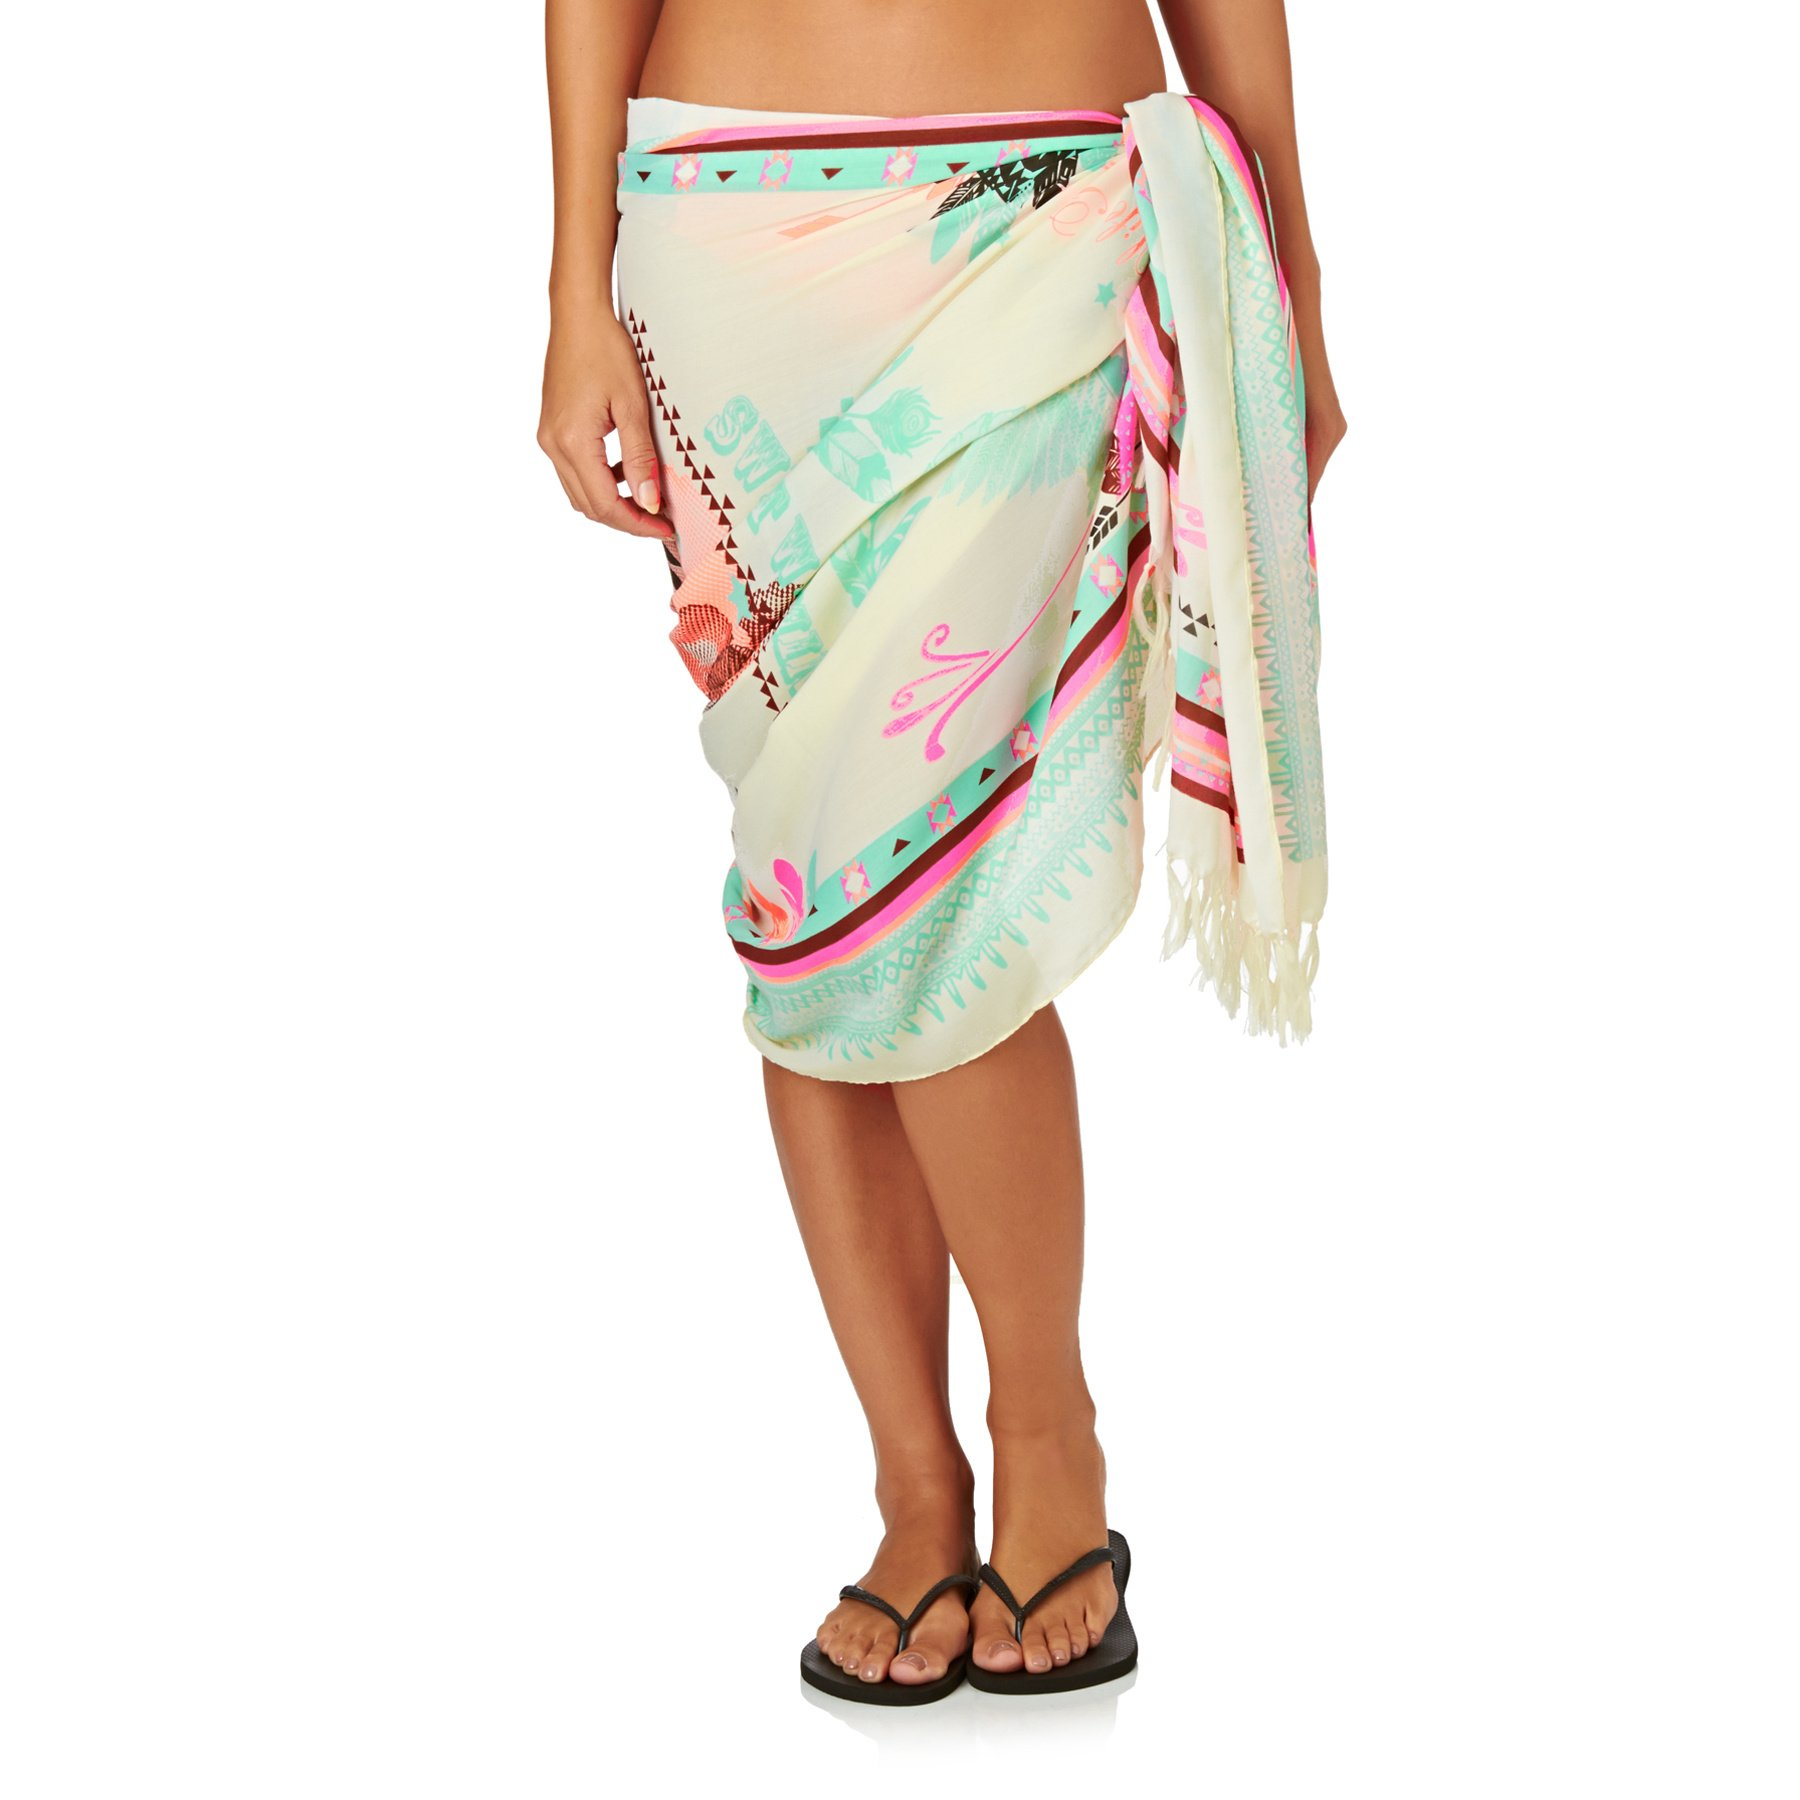 Hipanema Women's Hipanema Sarongs - Hipanema Rodeo Sarong - Beige